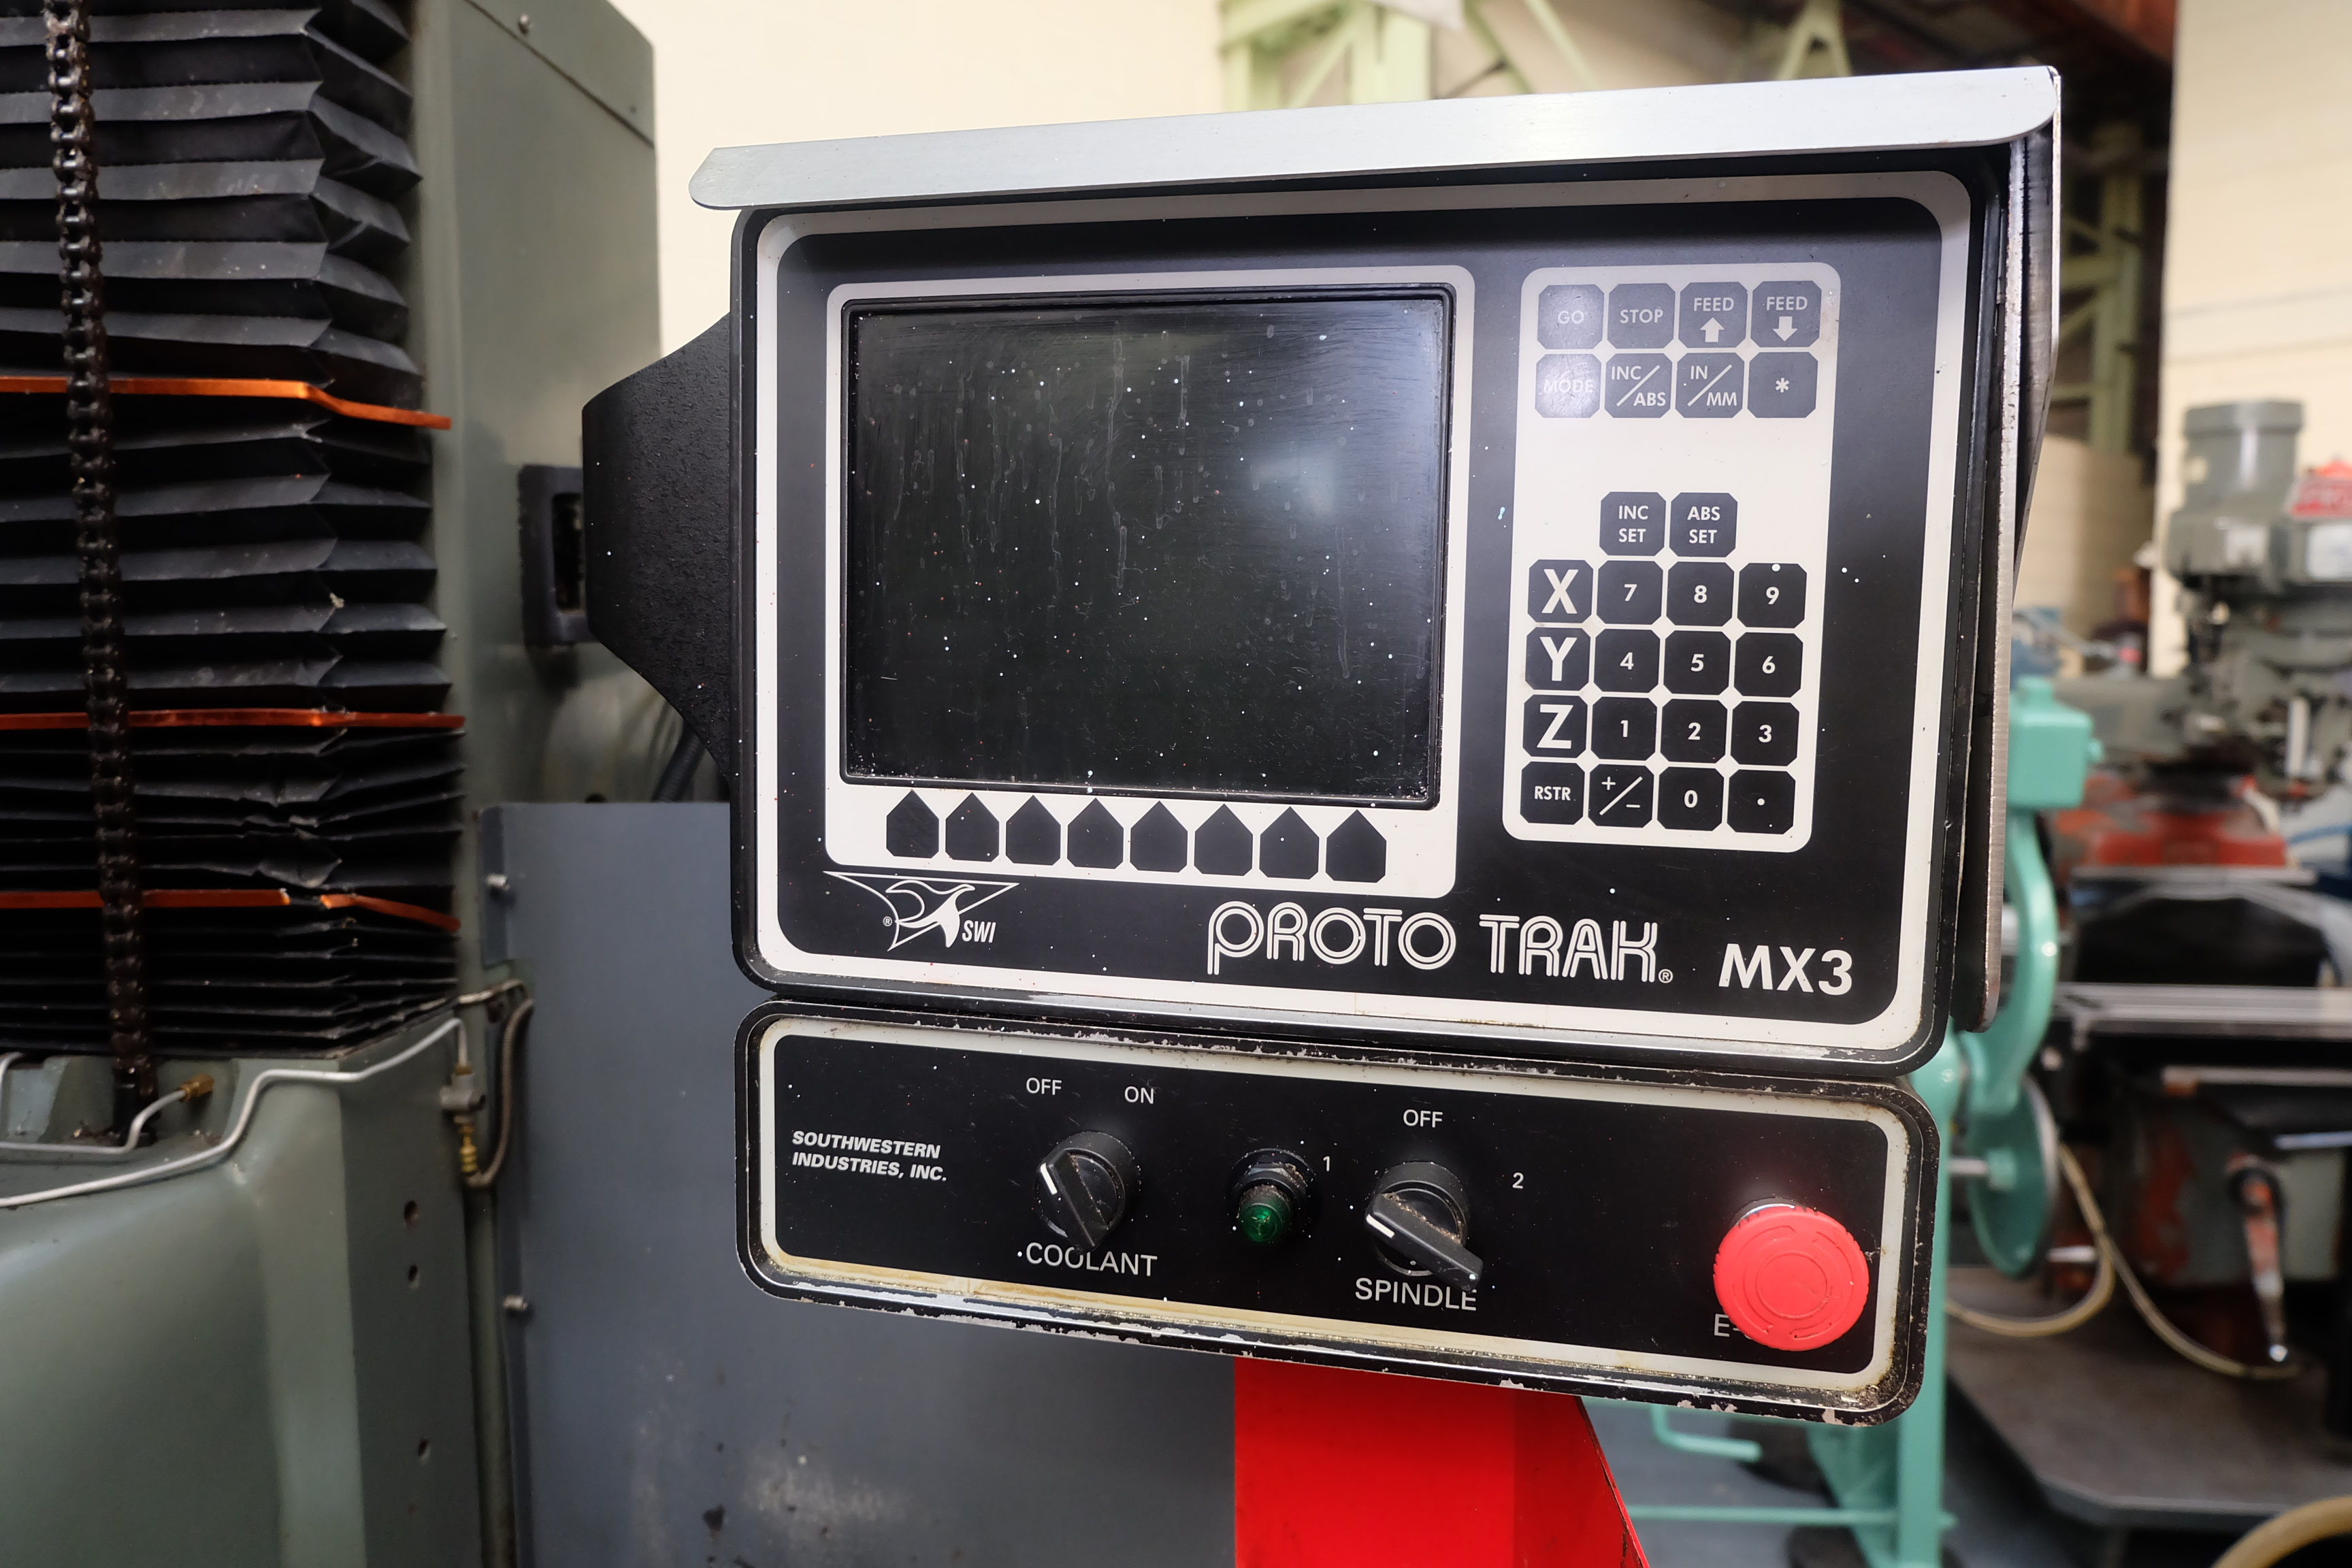 "2 x XYZ Type DPM Milling Machines Table 42"" x 12 1/2"". Prototrak MX3 Control. For Spares or Repair. - Image 15 of 21"